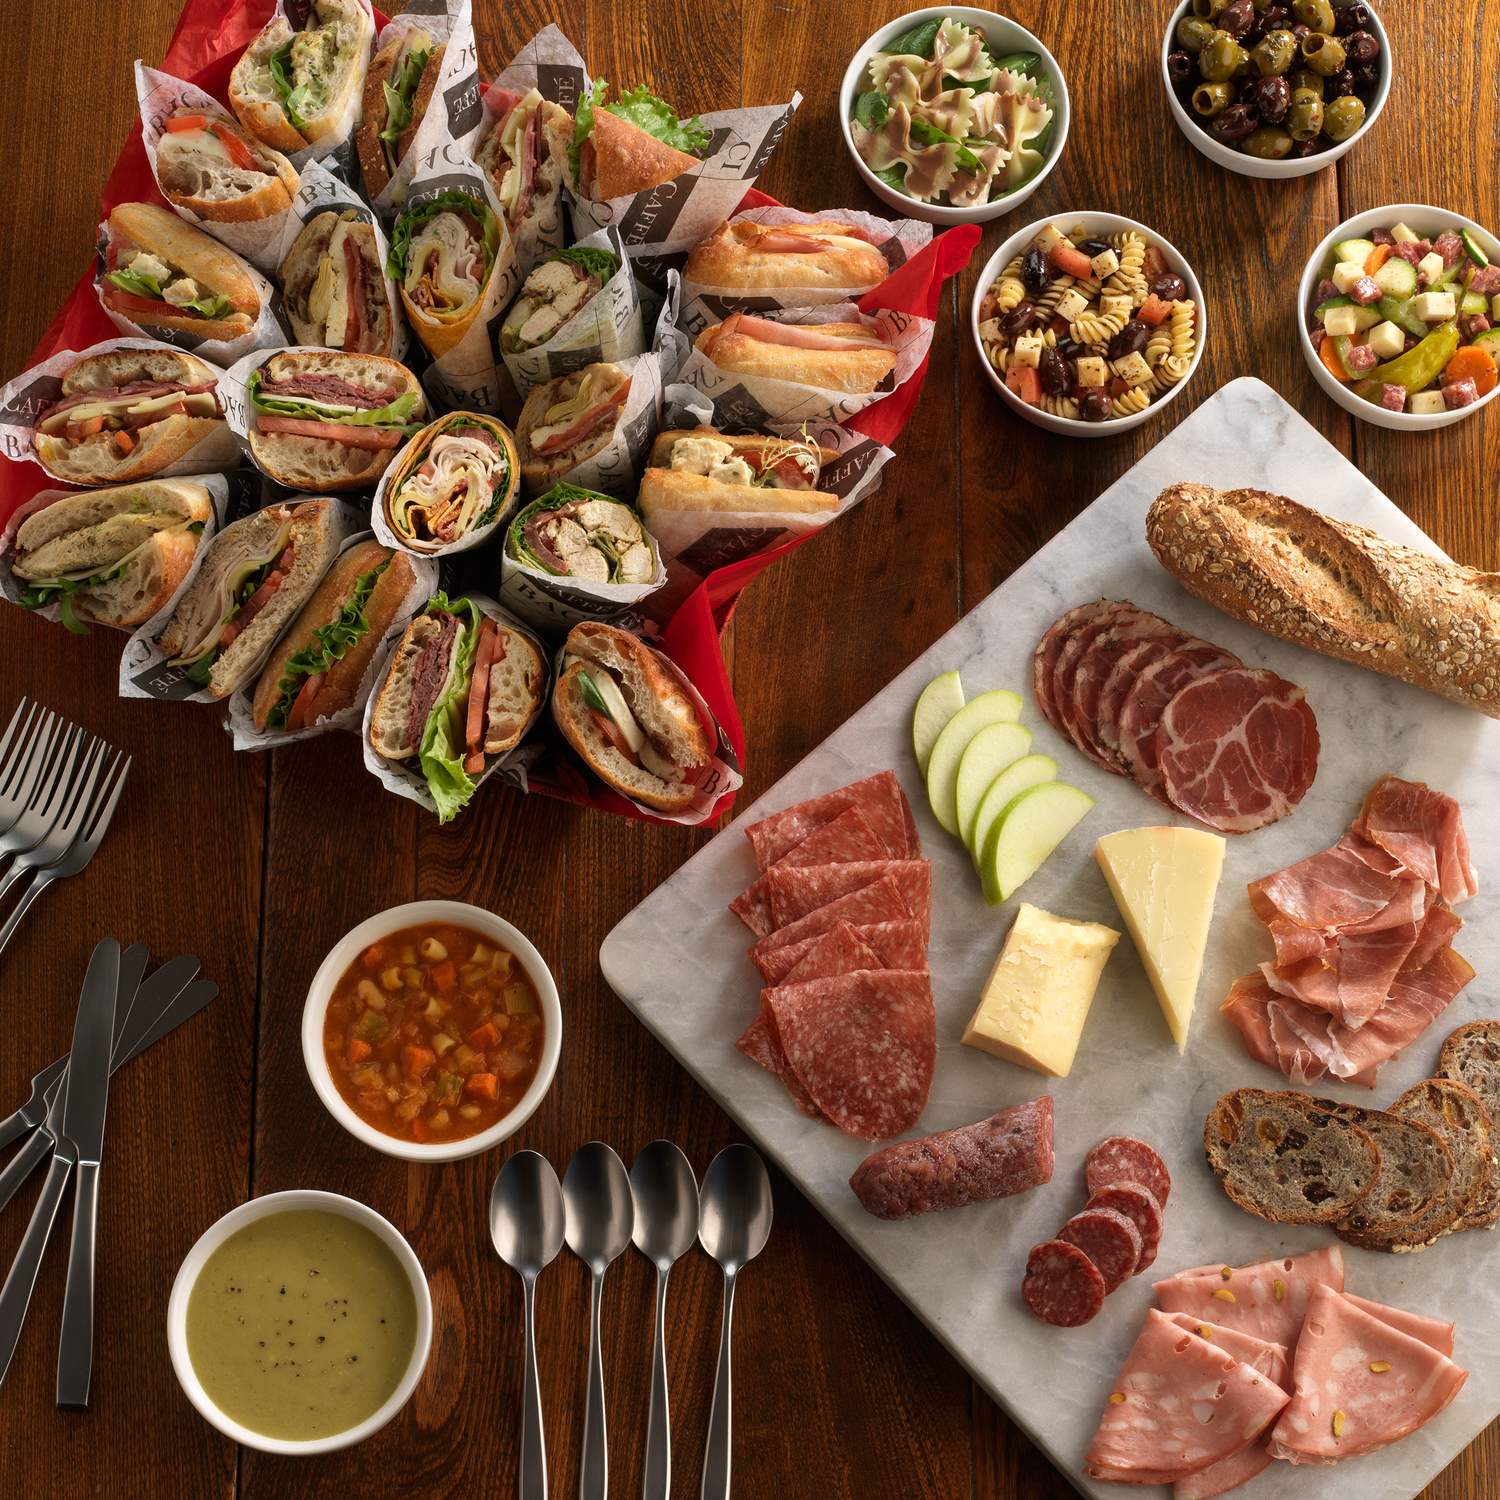 catering menu ideas for